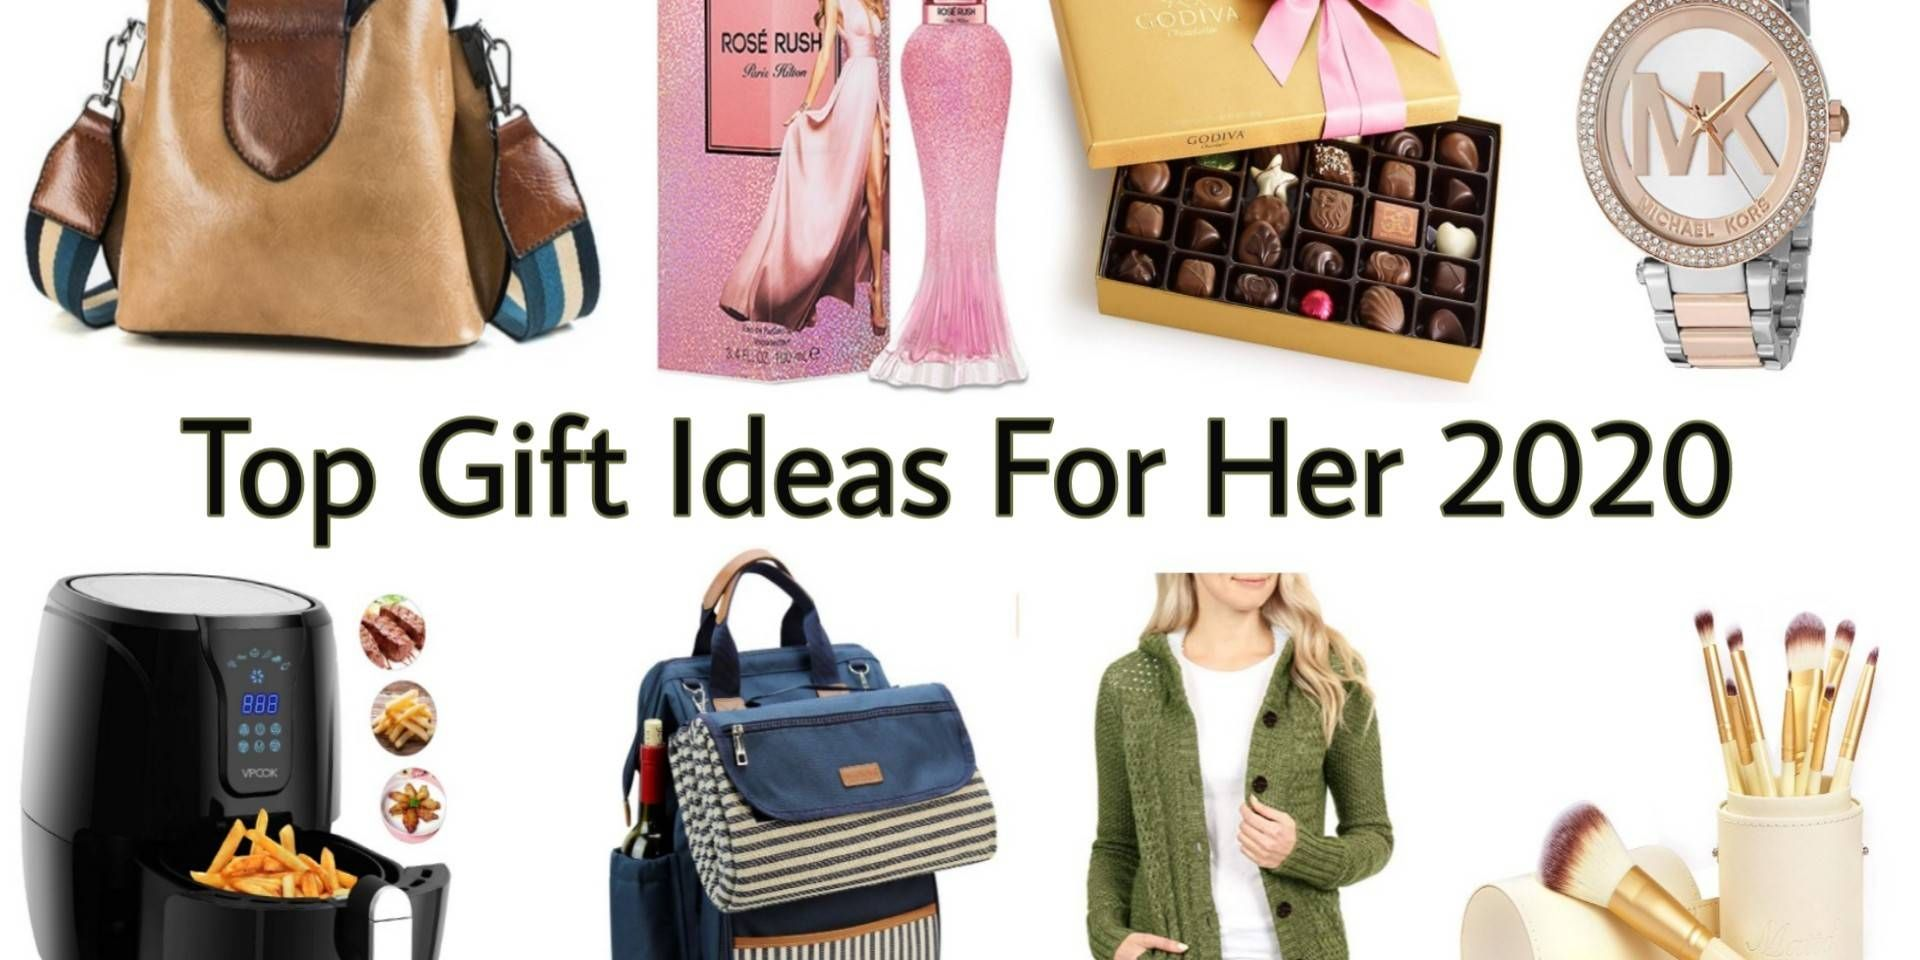 Best Birthday Gifts For Women 2020 Top Gift Ideas For Her 2020 Enfobay In 2020 Christmas Gifts For Boyfriend Birthday Gift For Wife Christmas Gifts For Her